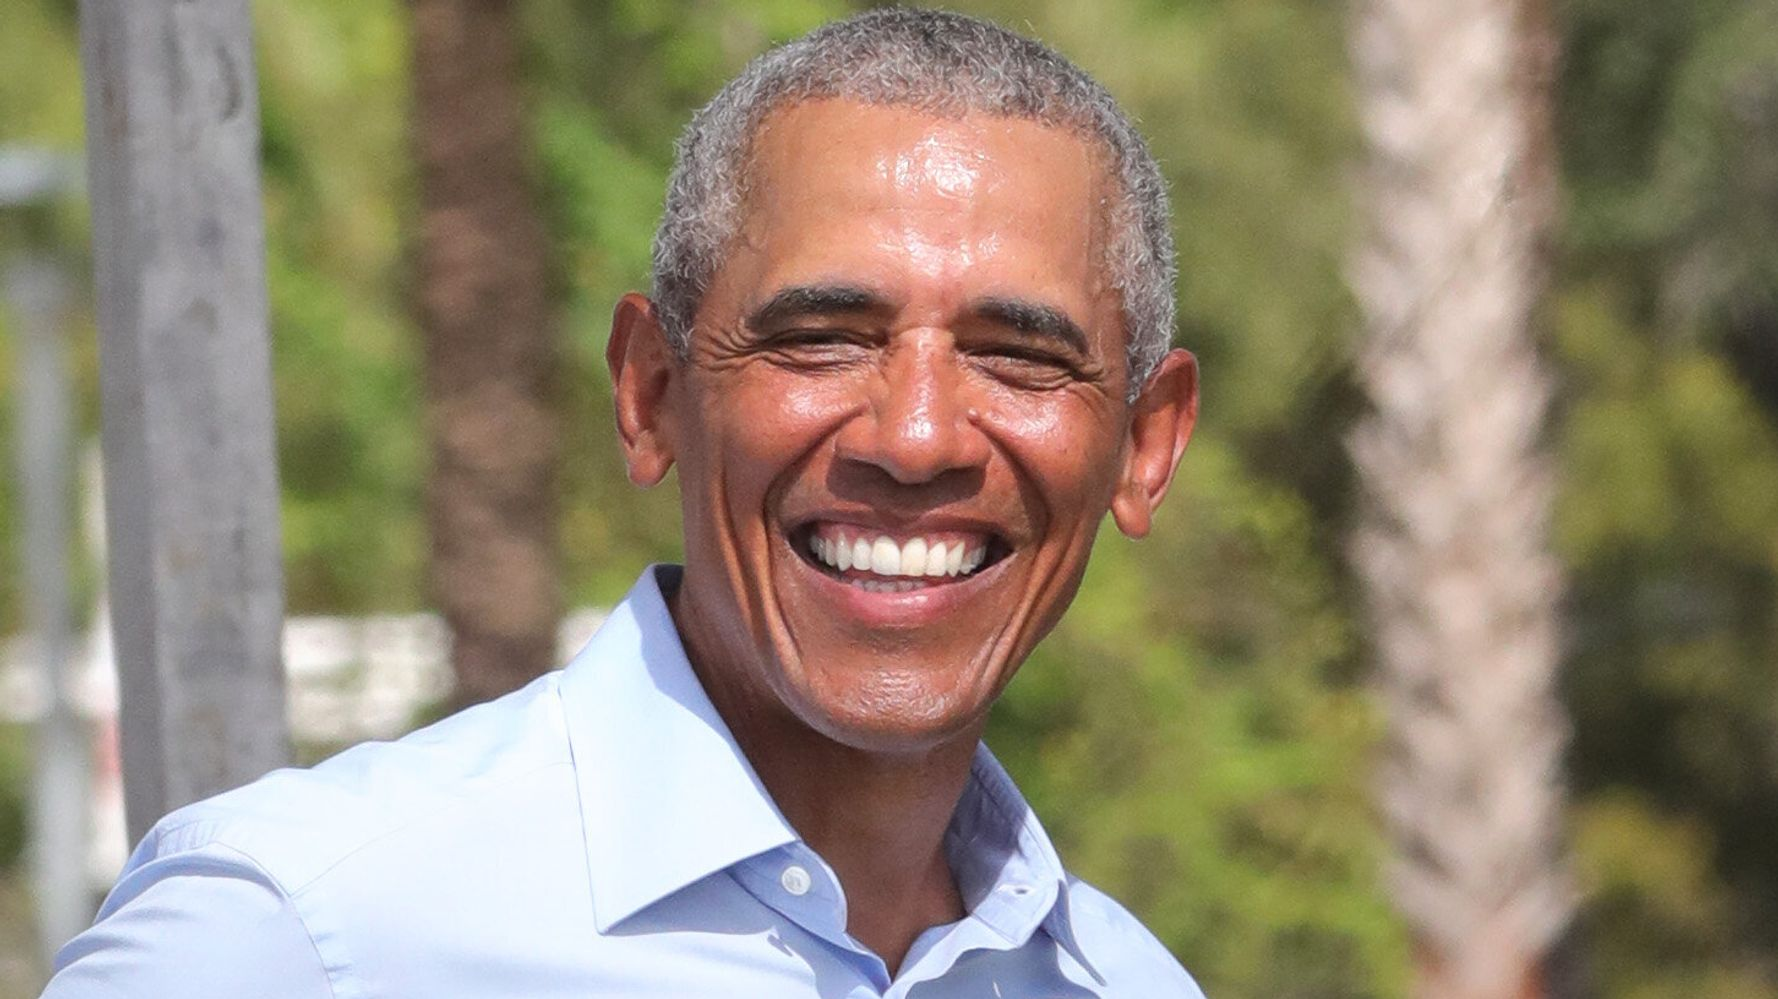 Barack Obama Is Throwing A Birthday Bash For His 60th Amid Spread Of Delta Variant